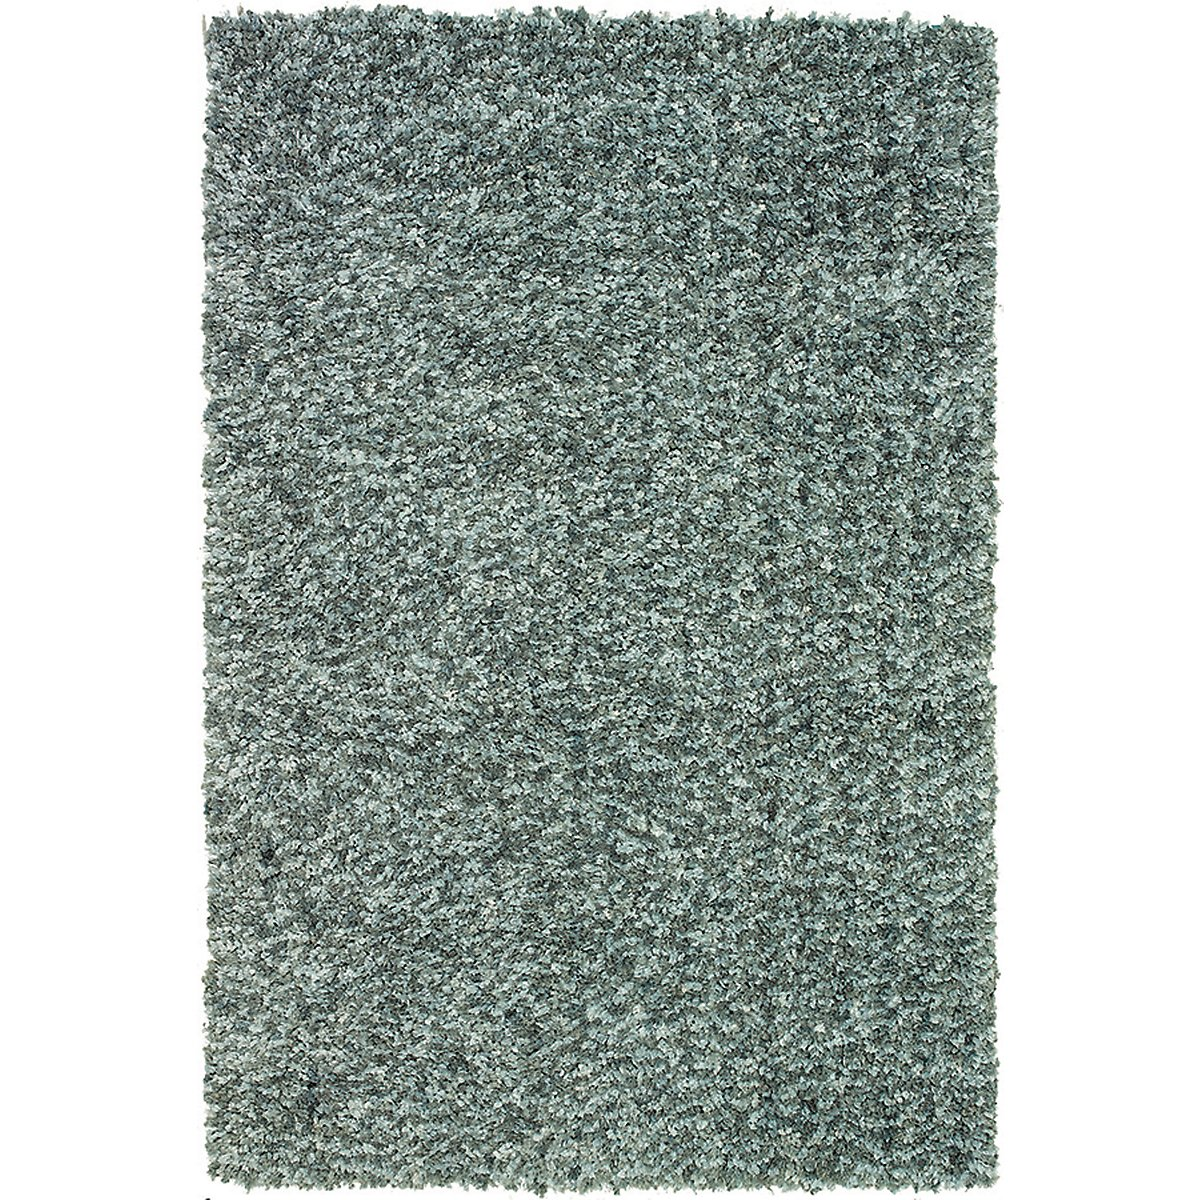 Utopia Lt Blue 5X8 Area Rug